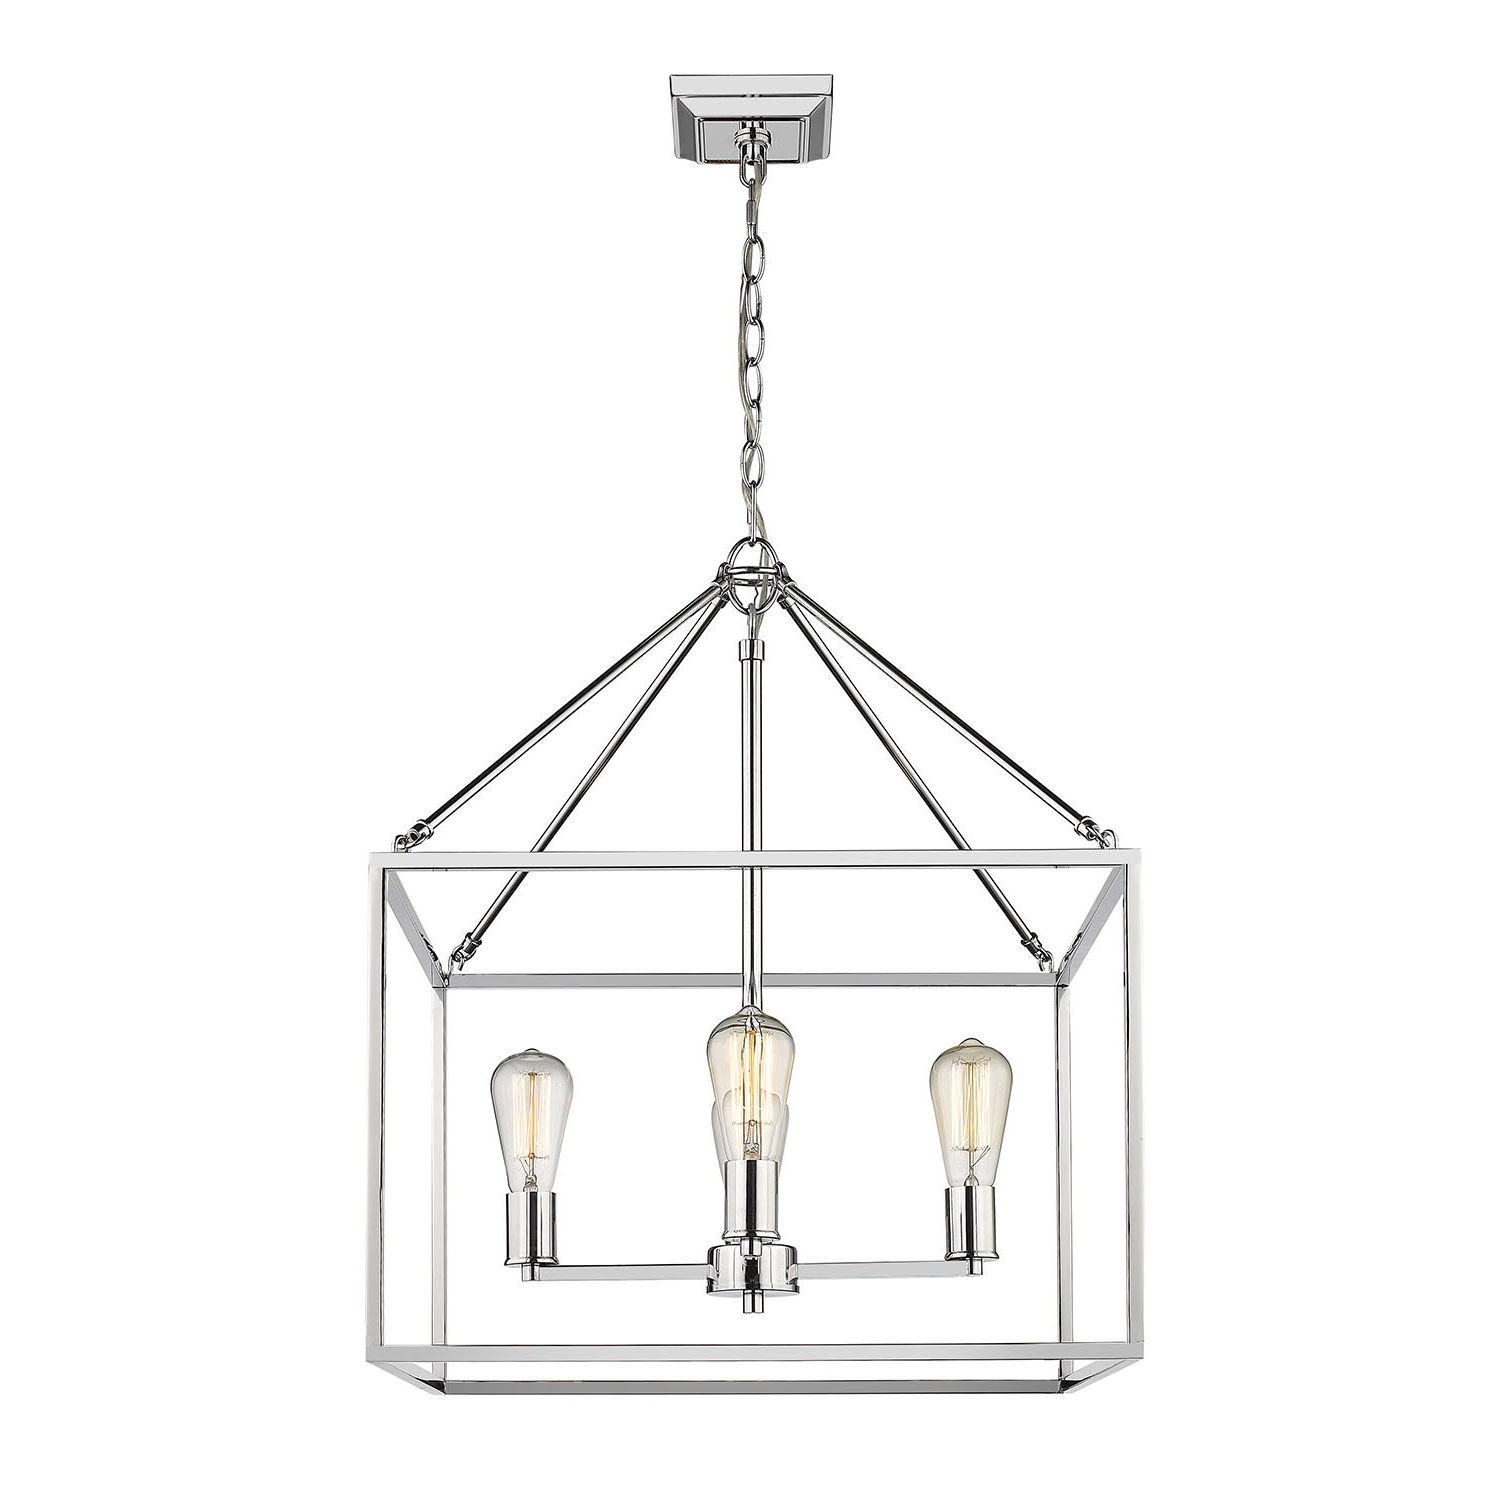 Odie 4 Light Lantern Square Pendants Within Widely Used Zabel 4 Light Lantern Square / Rectangle Pendant (Gallery 10 of 20)